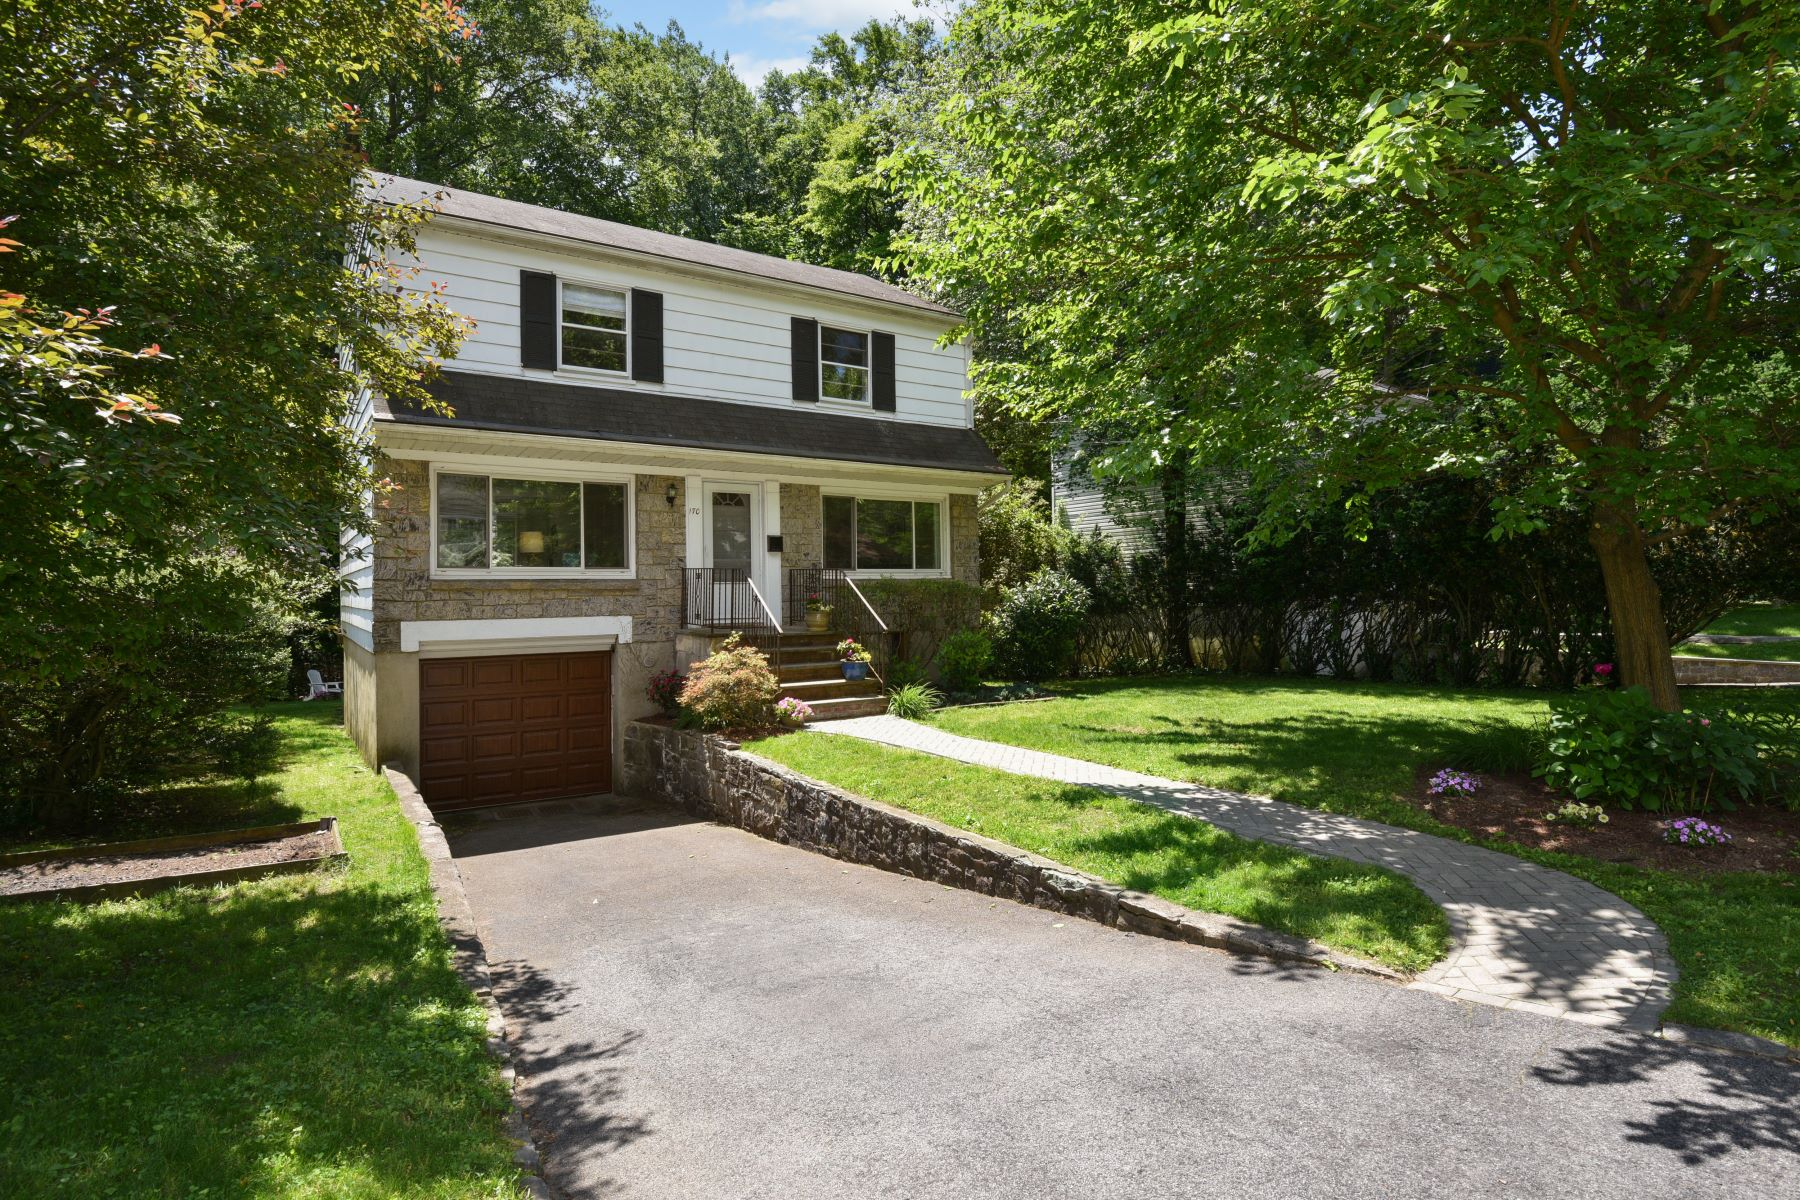 Single Family Homes for Sale at 170 Norman Road New Rochelle, New York 10804 United States